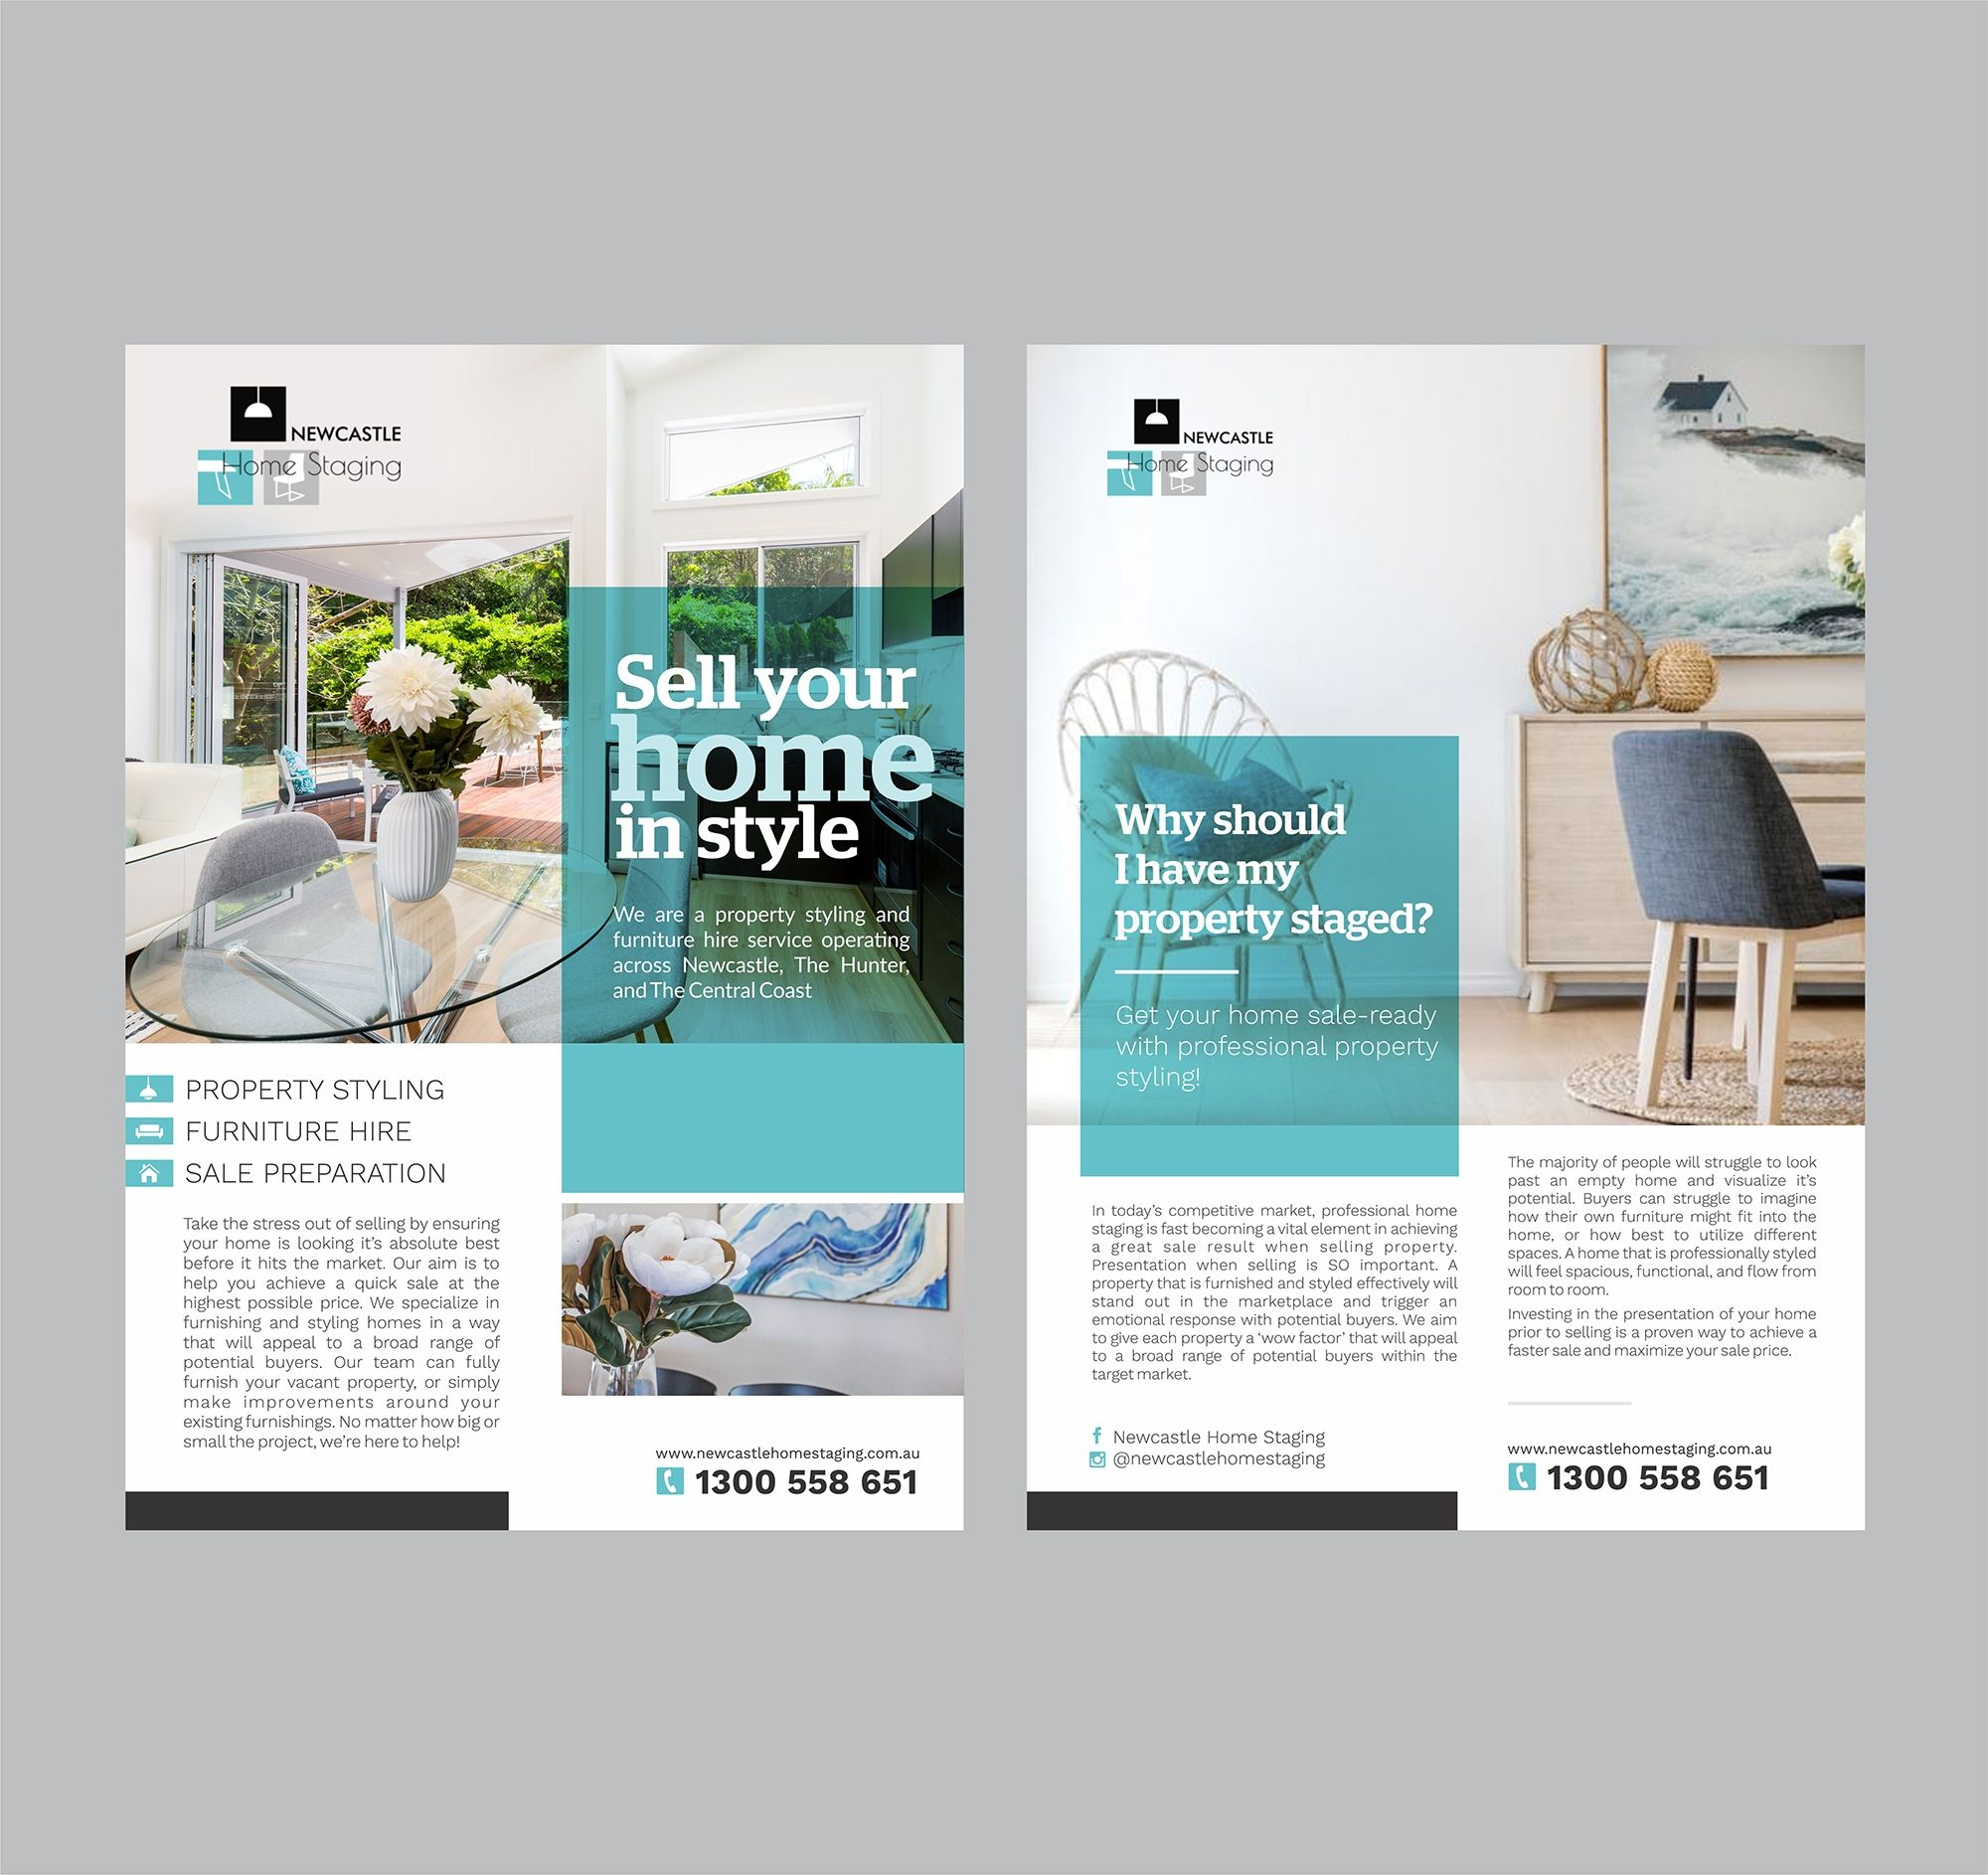 Interior Design Home Staging: Design Double Sided Flyer For Newcastle Home